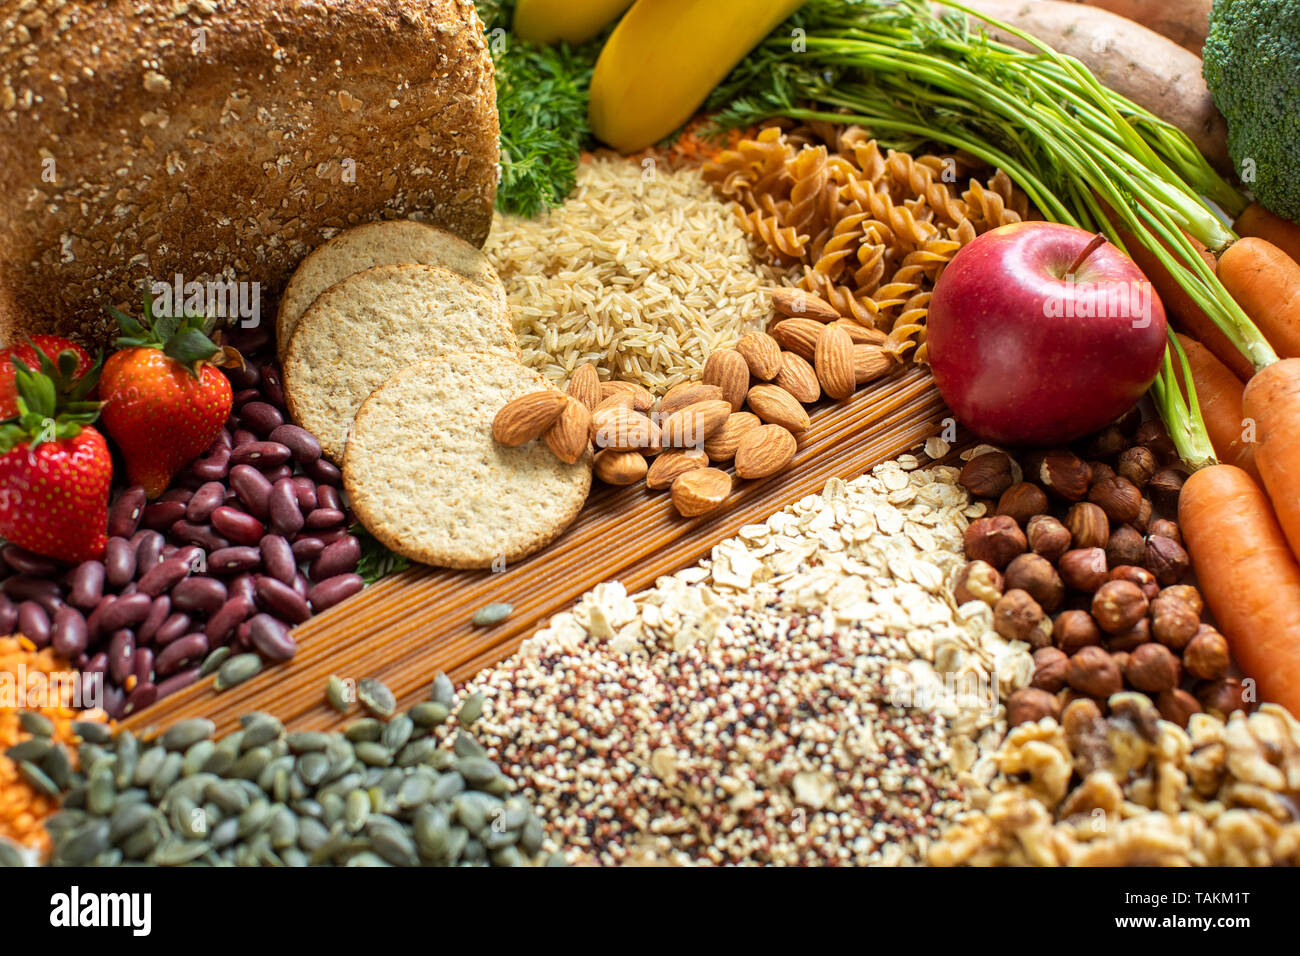 Overhead Shot Of Foods Containing Healthy Or Good Carbohydrates - Stock Image